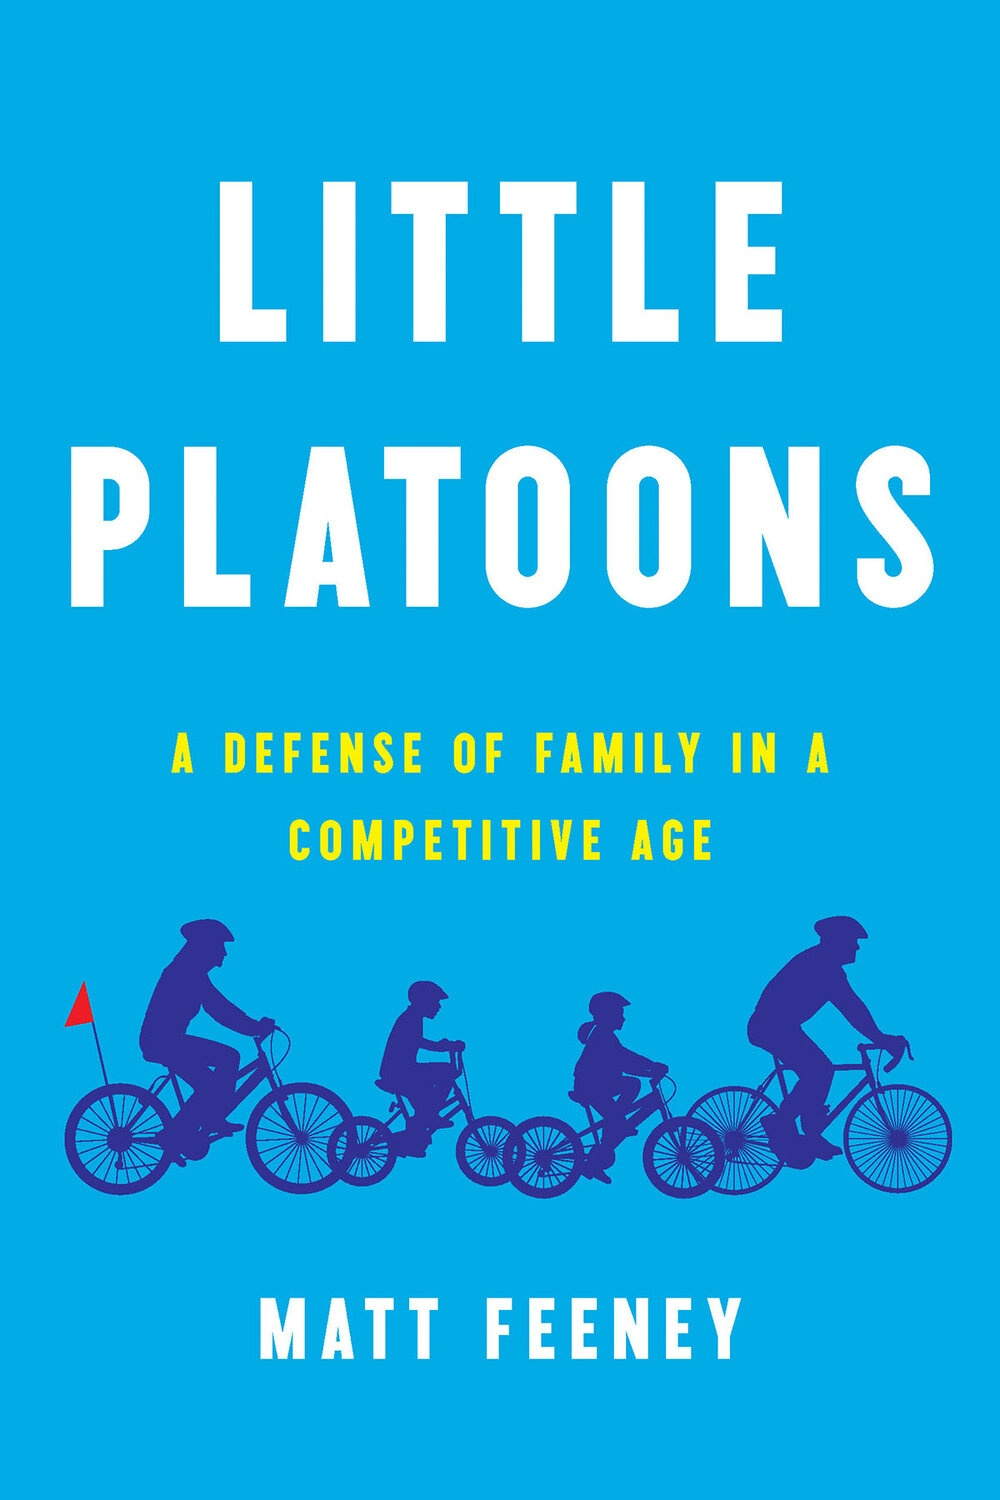 Little Platoons: A Defense of Family in a Competitive Age by Matt Feeney